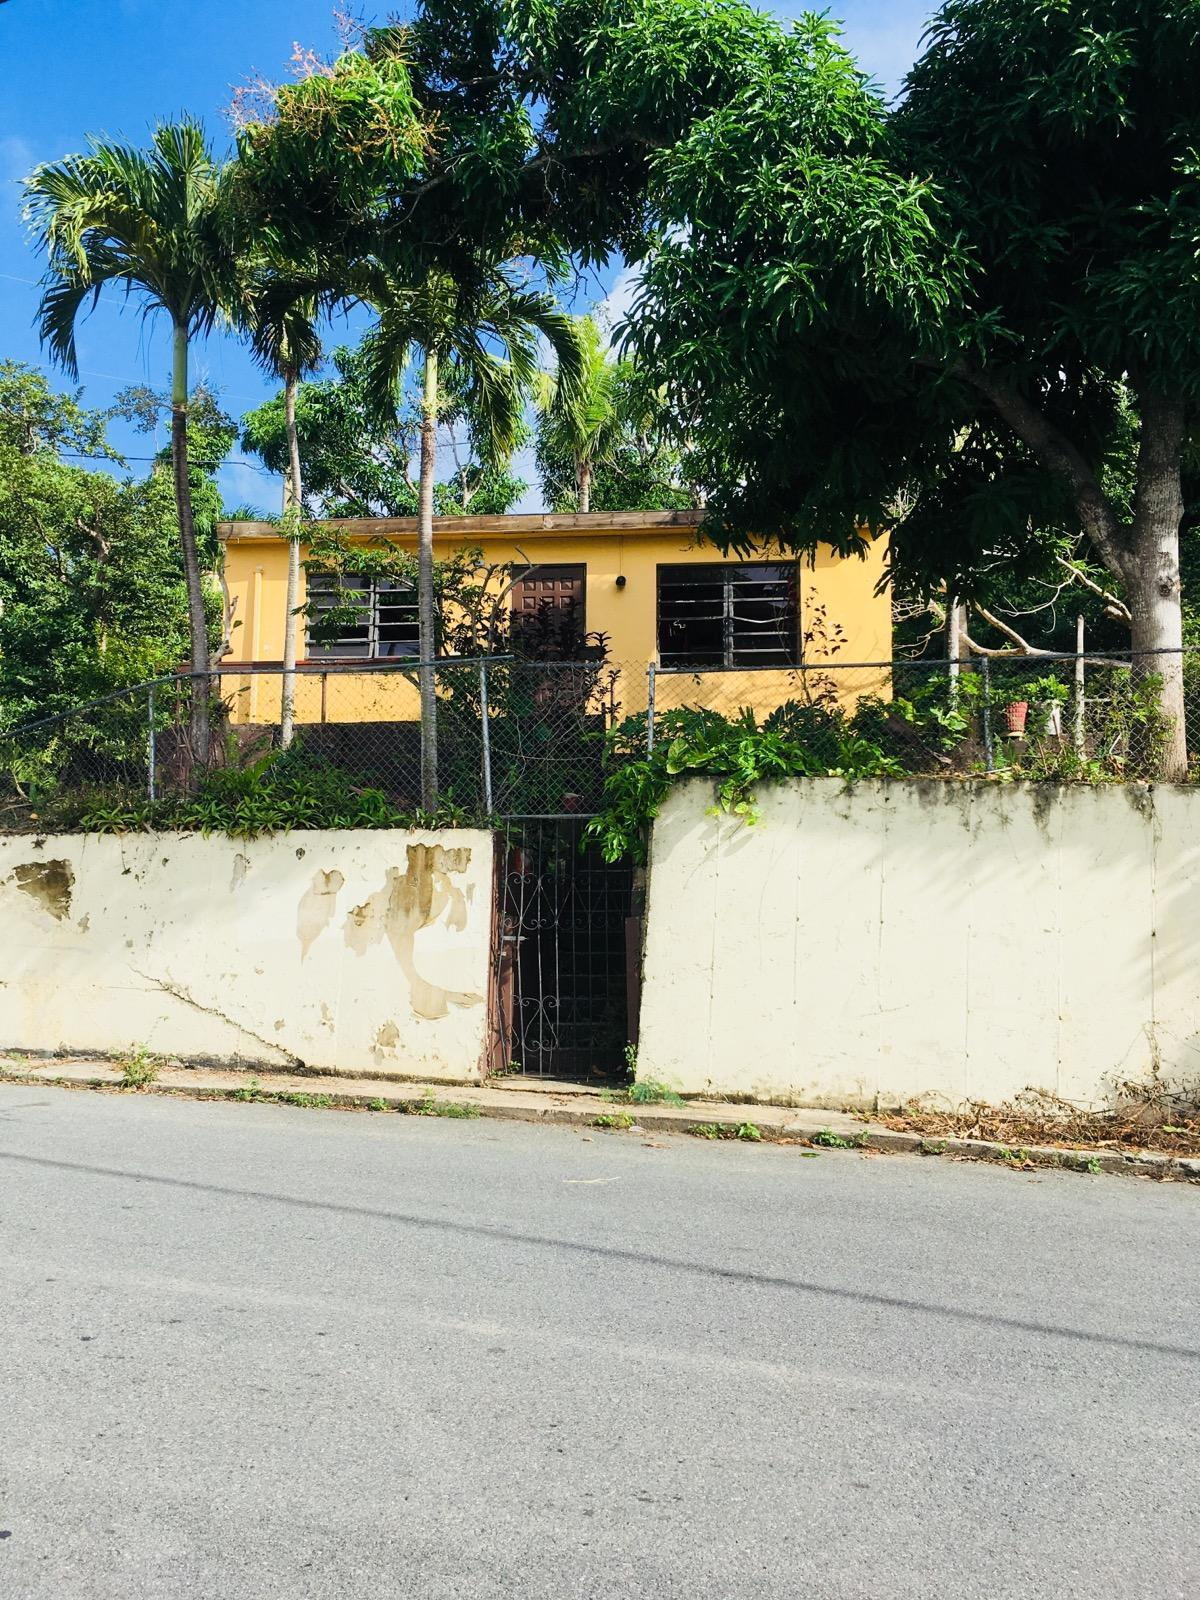 Single Family Home for Sale at 394-12 Anna's Retreat NEW 394-12 Anna's Retreat NEW St Thomas, Virgin Islands 00802 United States Virgin Islands